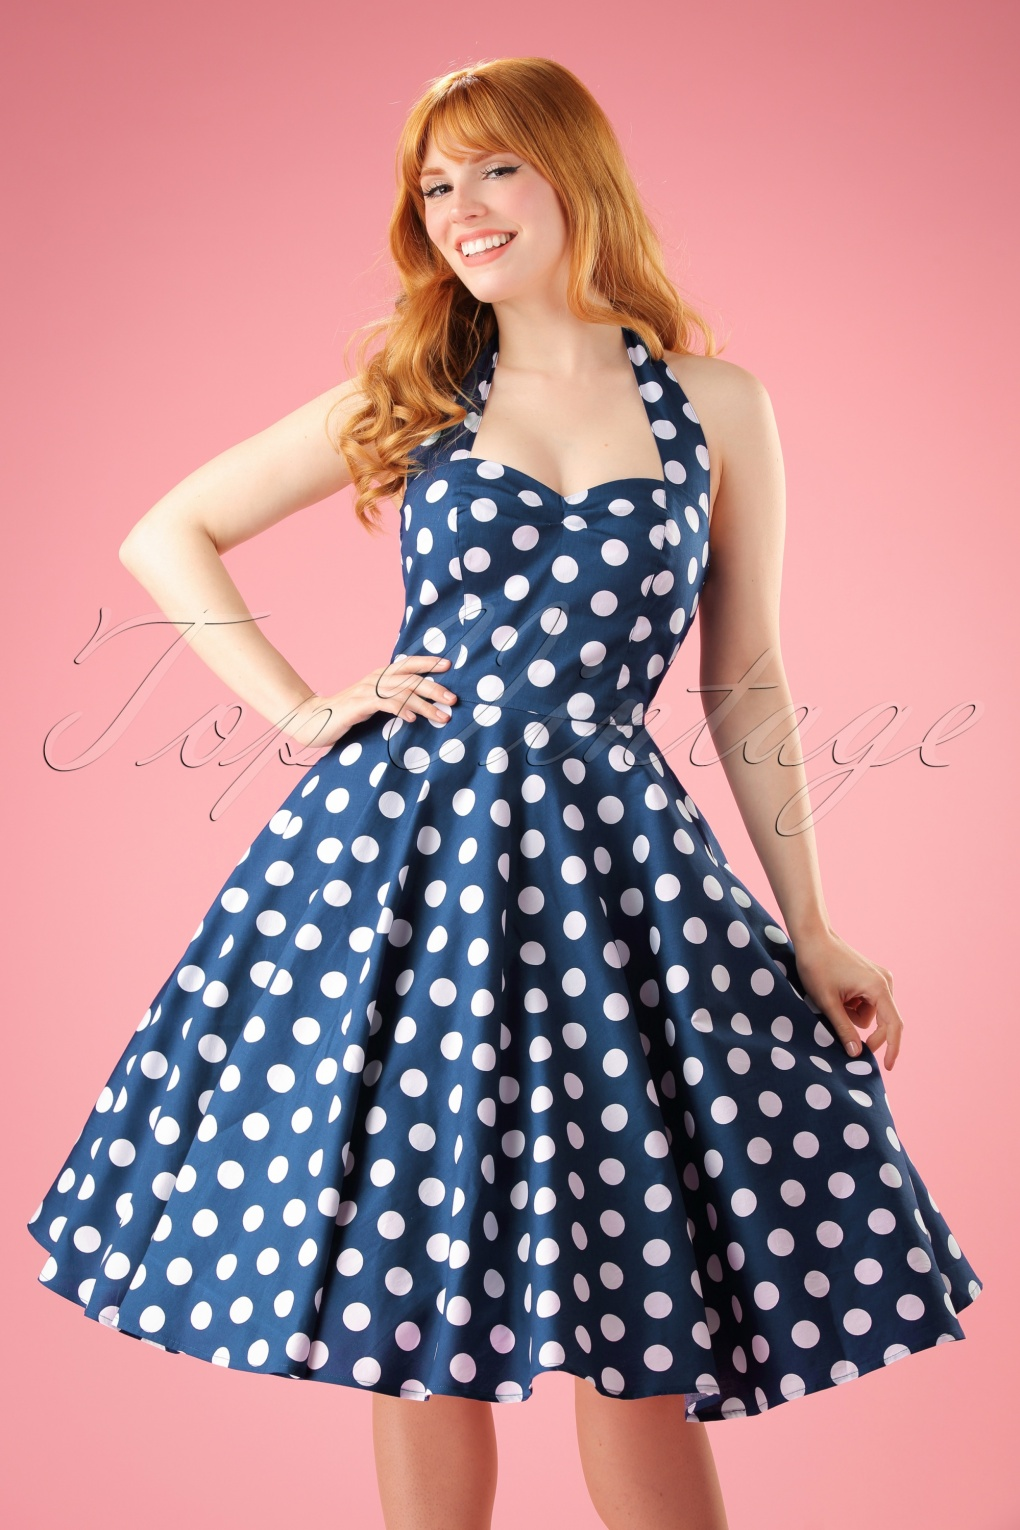 1940s Pinup Dresses for Sale 50s Meriam Polkadot Swing Dress in Navy and White £37.54 AT vintagedancer.com